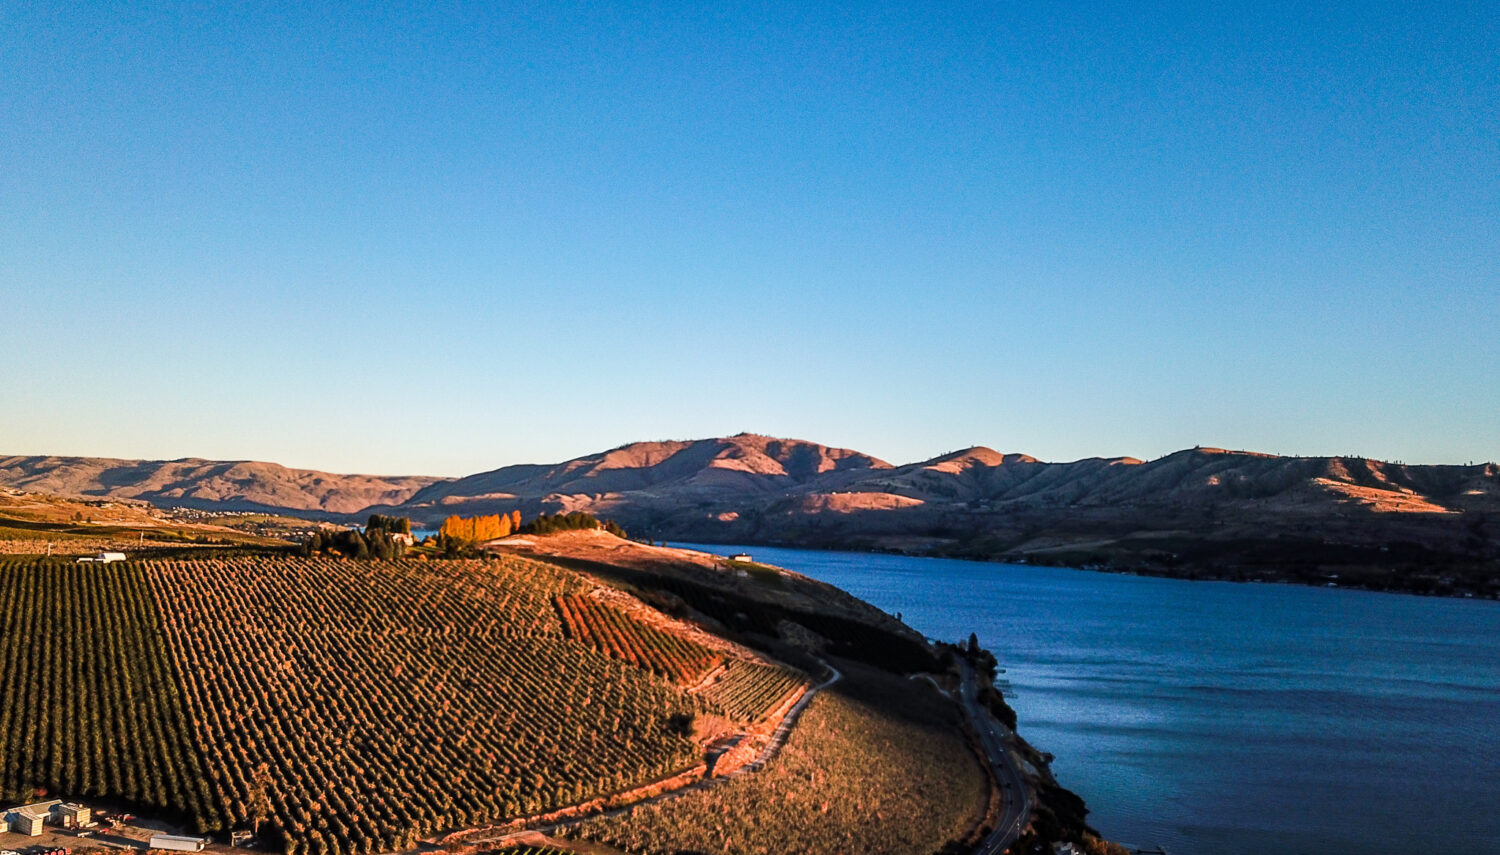 Broad blue river winds to the right of a hillside with rows of grape vines. Tab hills are in the distance and the sky is bright blue.